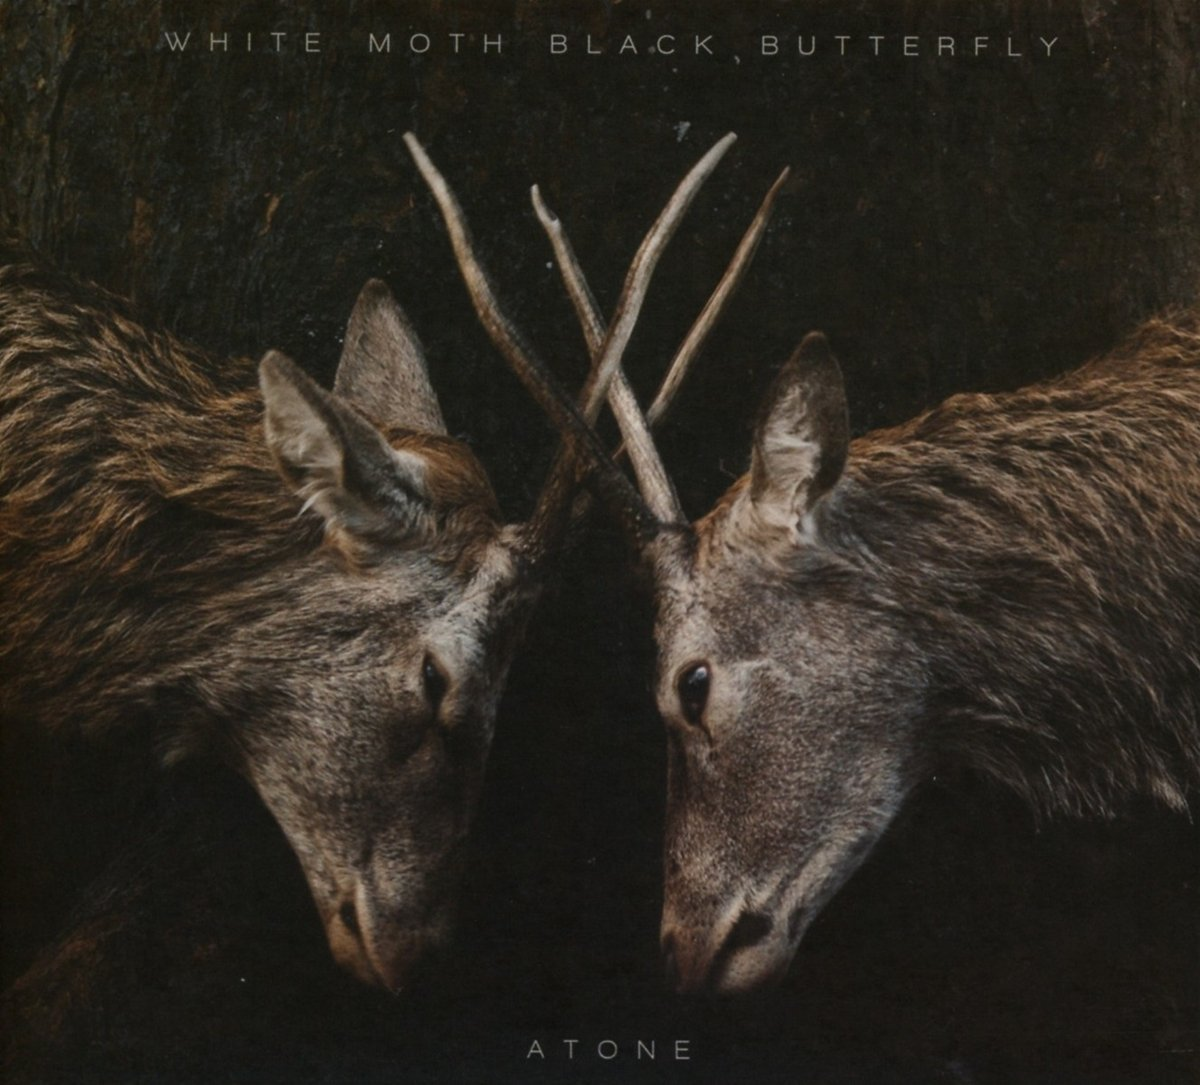 Atone by White Moth Black Butterfly image